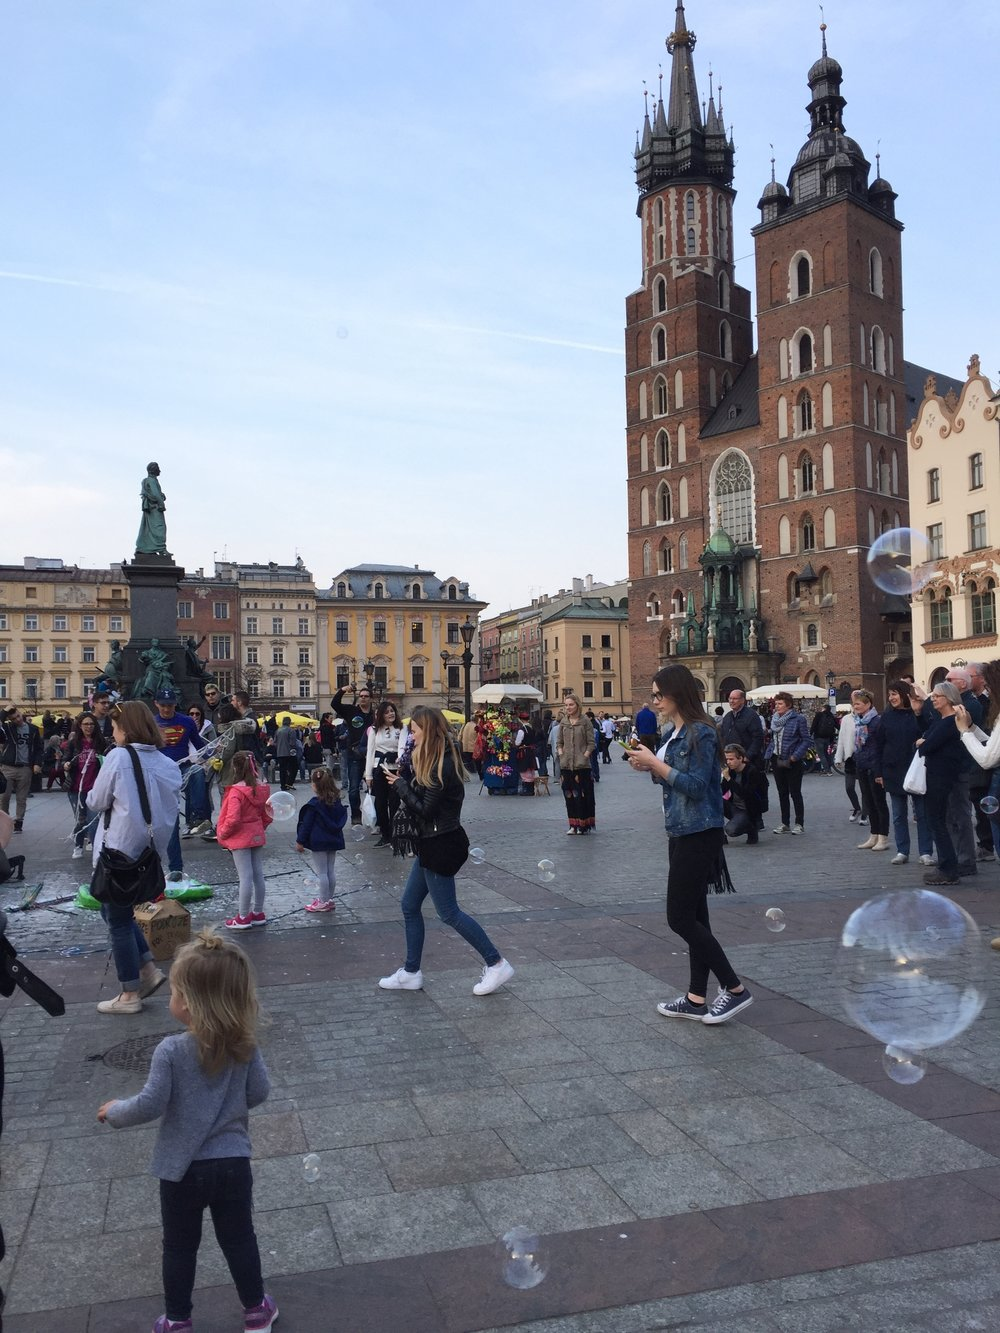 Charletta chasing bubbles in Rynek Glowny (Main Market Square)